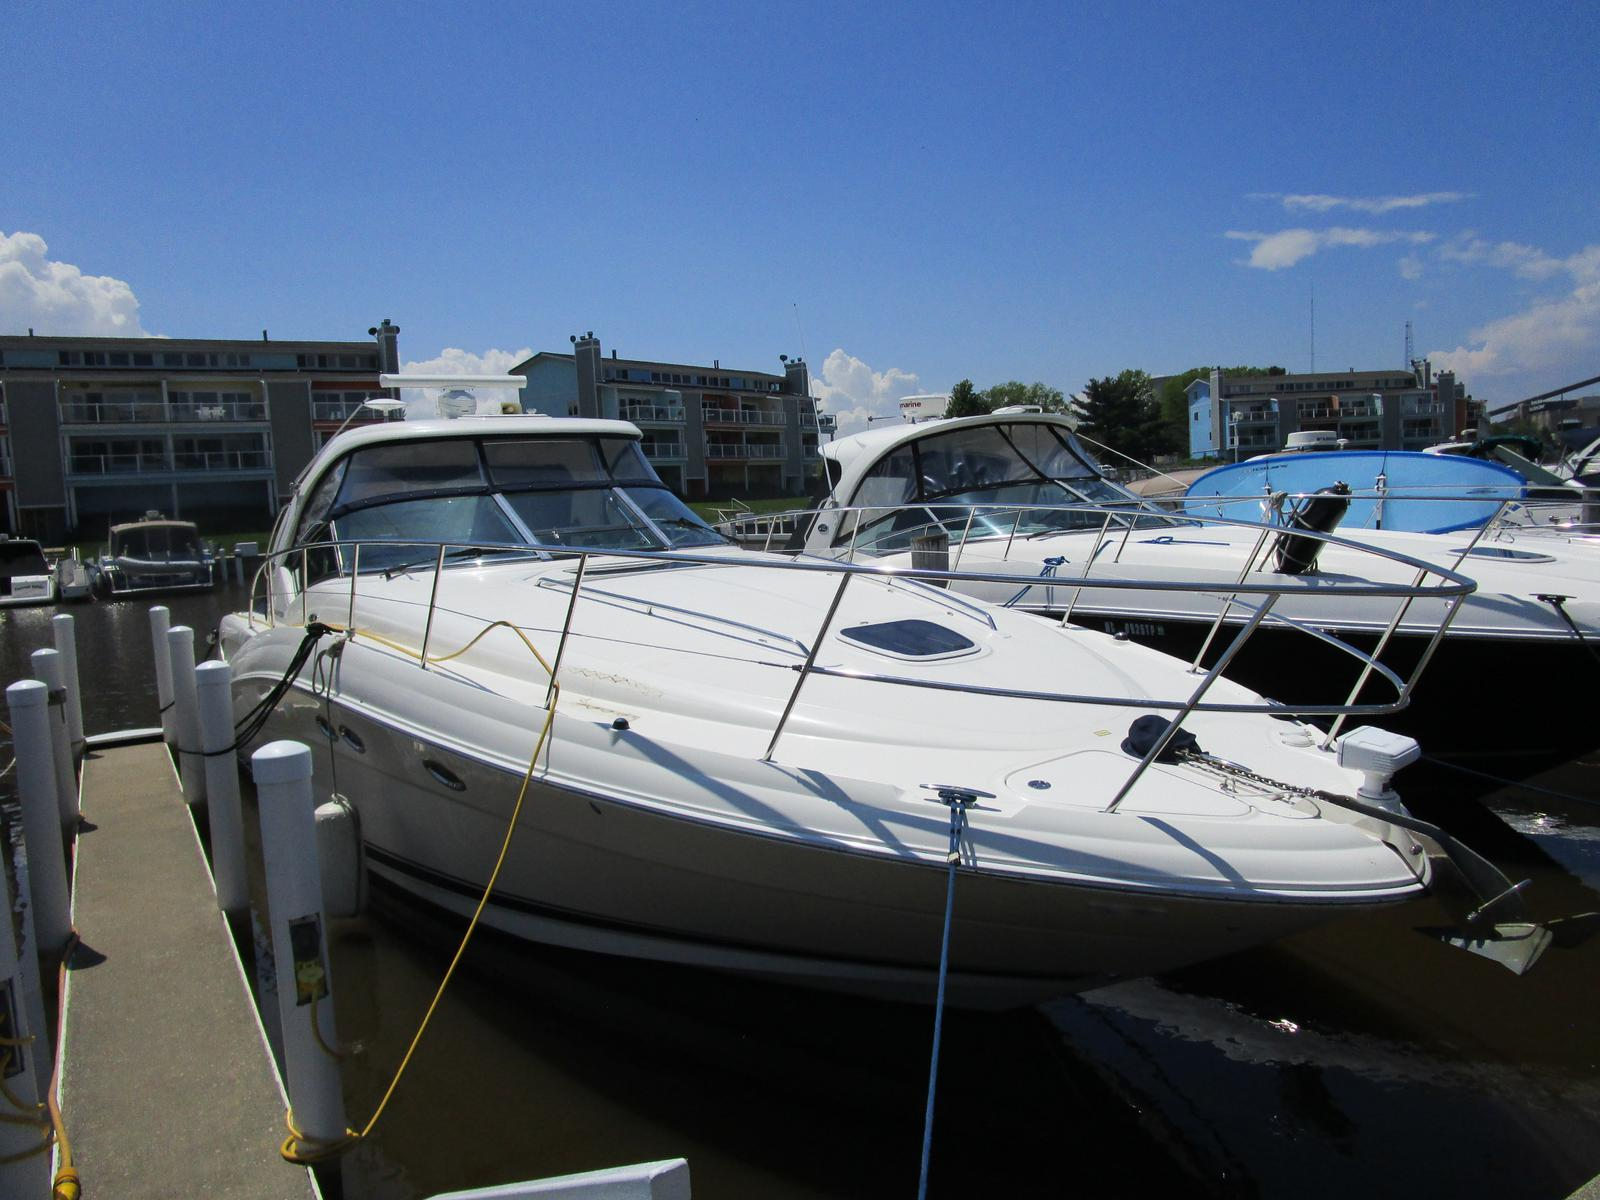 2004 Sea Ray boat for sale, model of the boat is 390 Sundancer & Image # 1 of 8